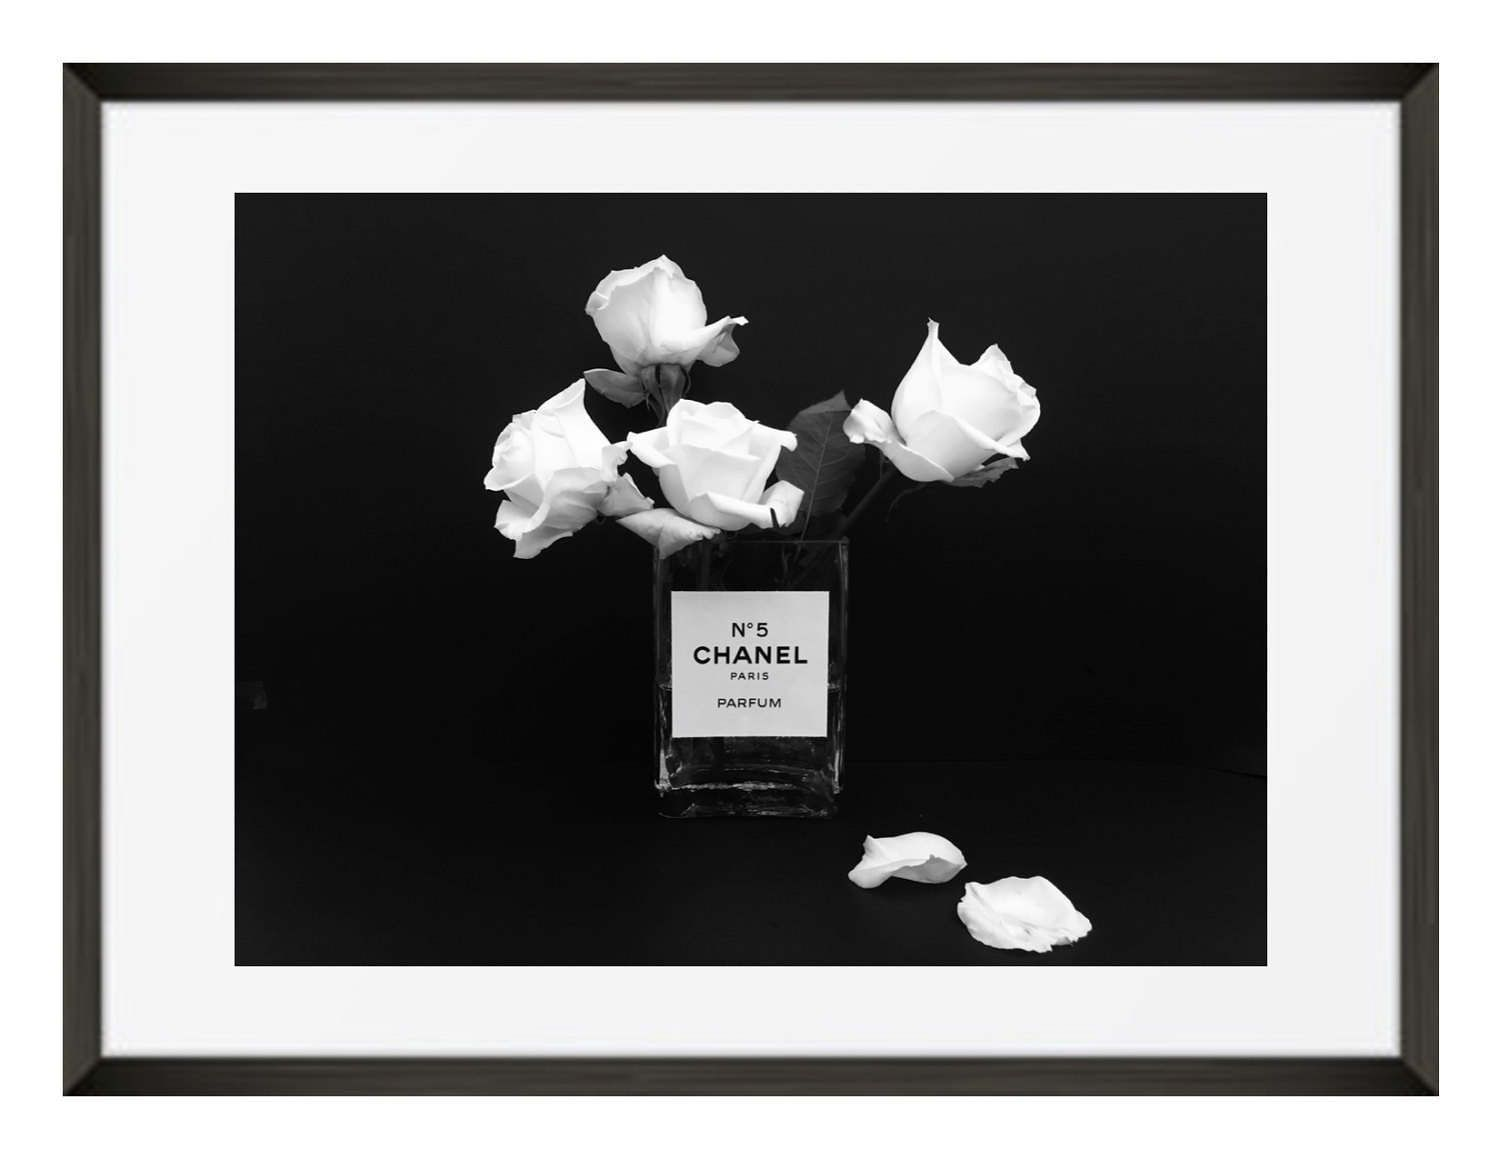 Chanel photograph black and white photography chanel no 5 glass flower vase with white roses small poster size print art 11 x 14 unframed by